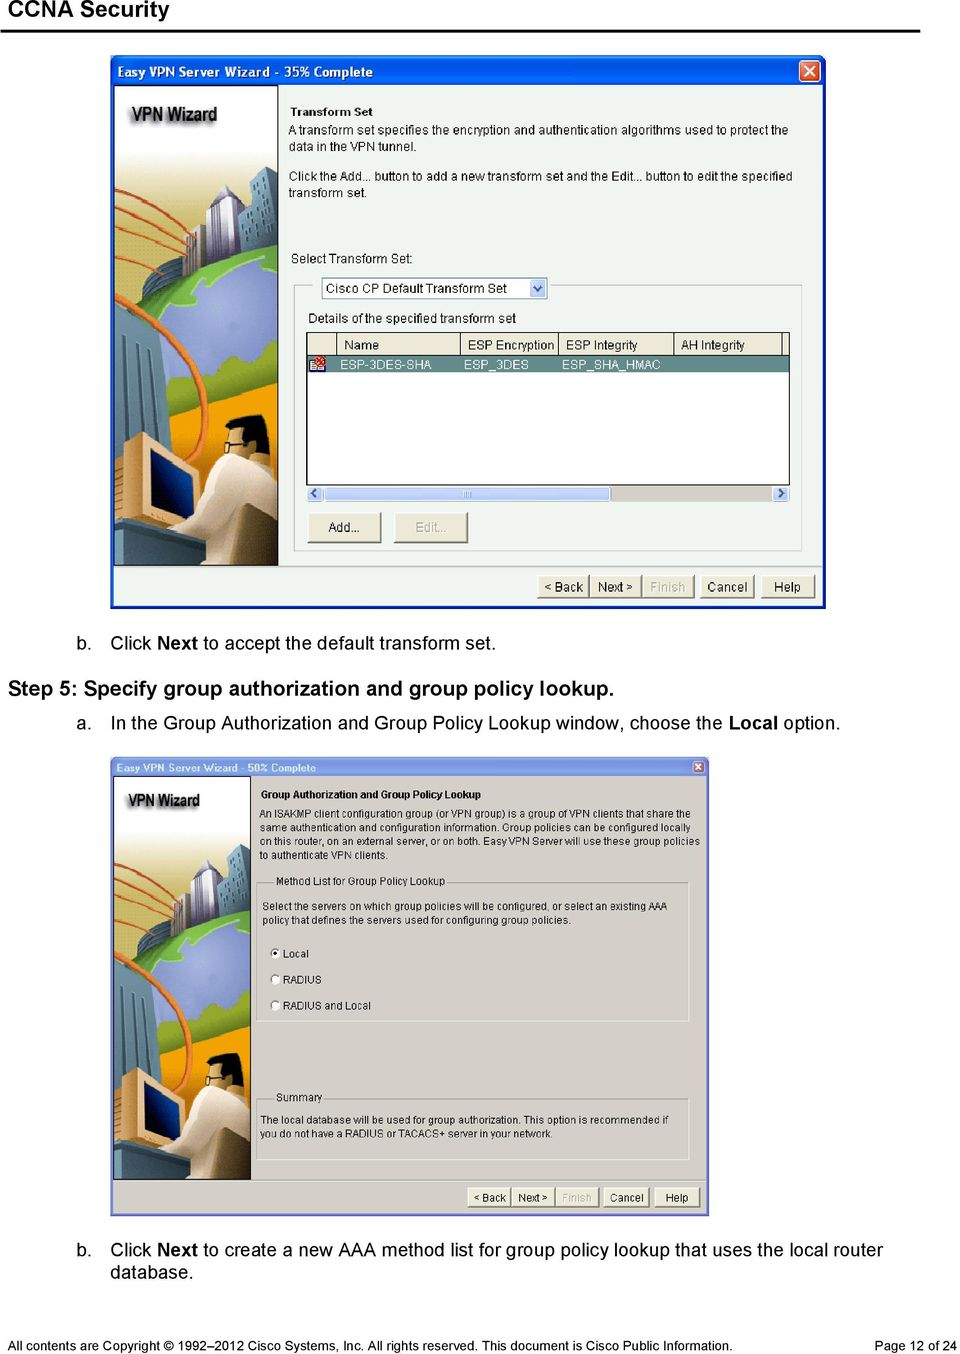 b. Click Next to create a new AAA method list for group policy lookup that uses the local router database.